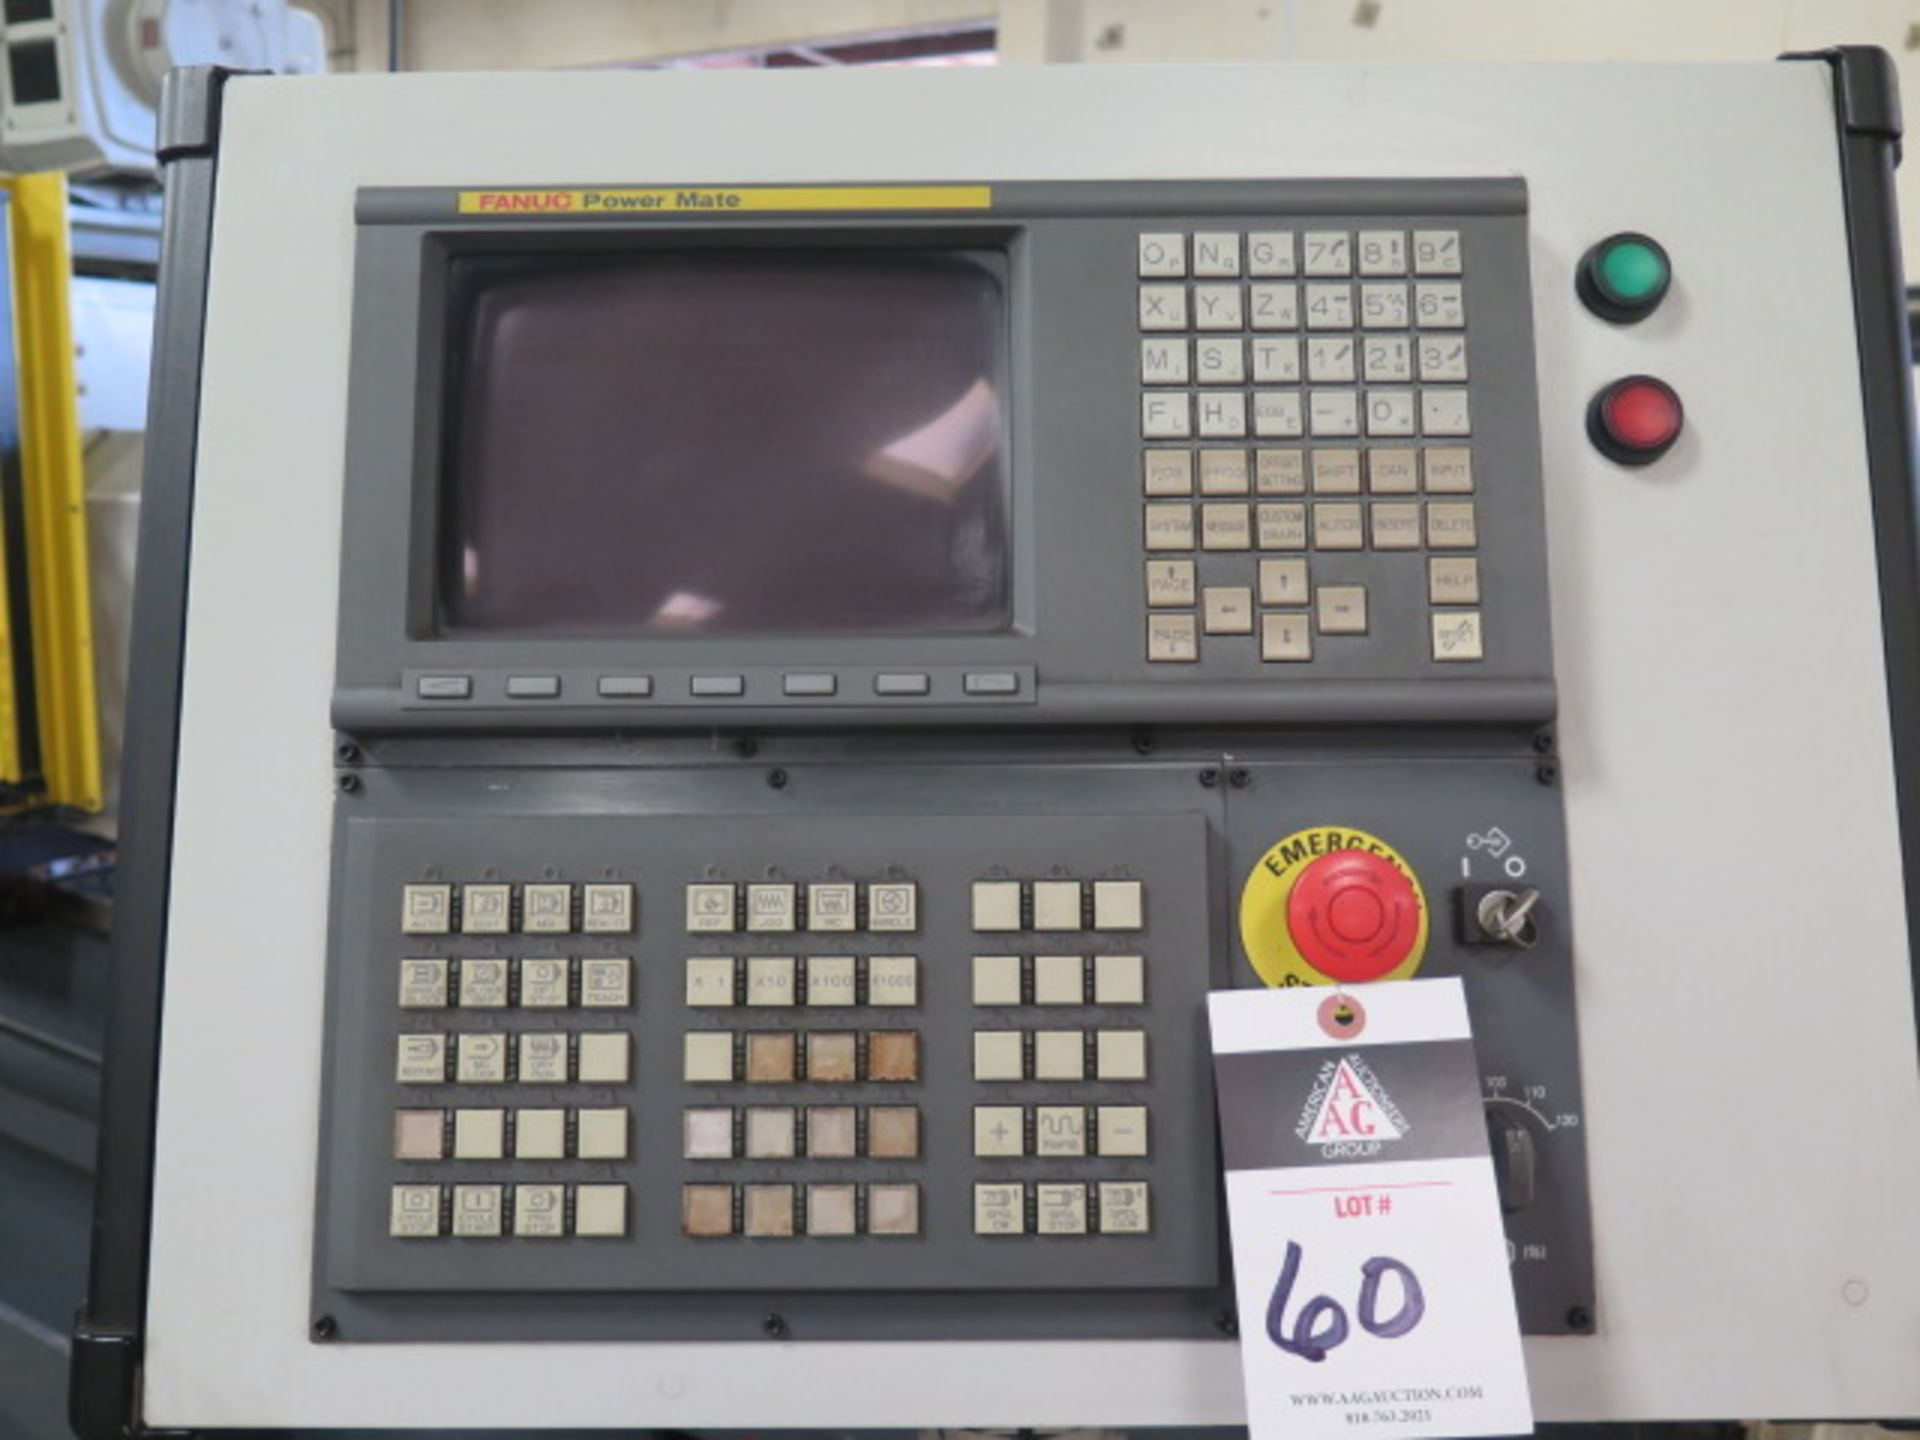 Laker-Craven-100 CNC Deep Hole Drilling Machine s/n 1241 w/ Fanuc Power MATE Controls, SOLD AS IS - Image 5 of 41